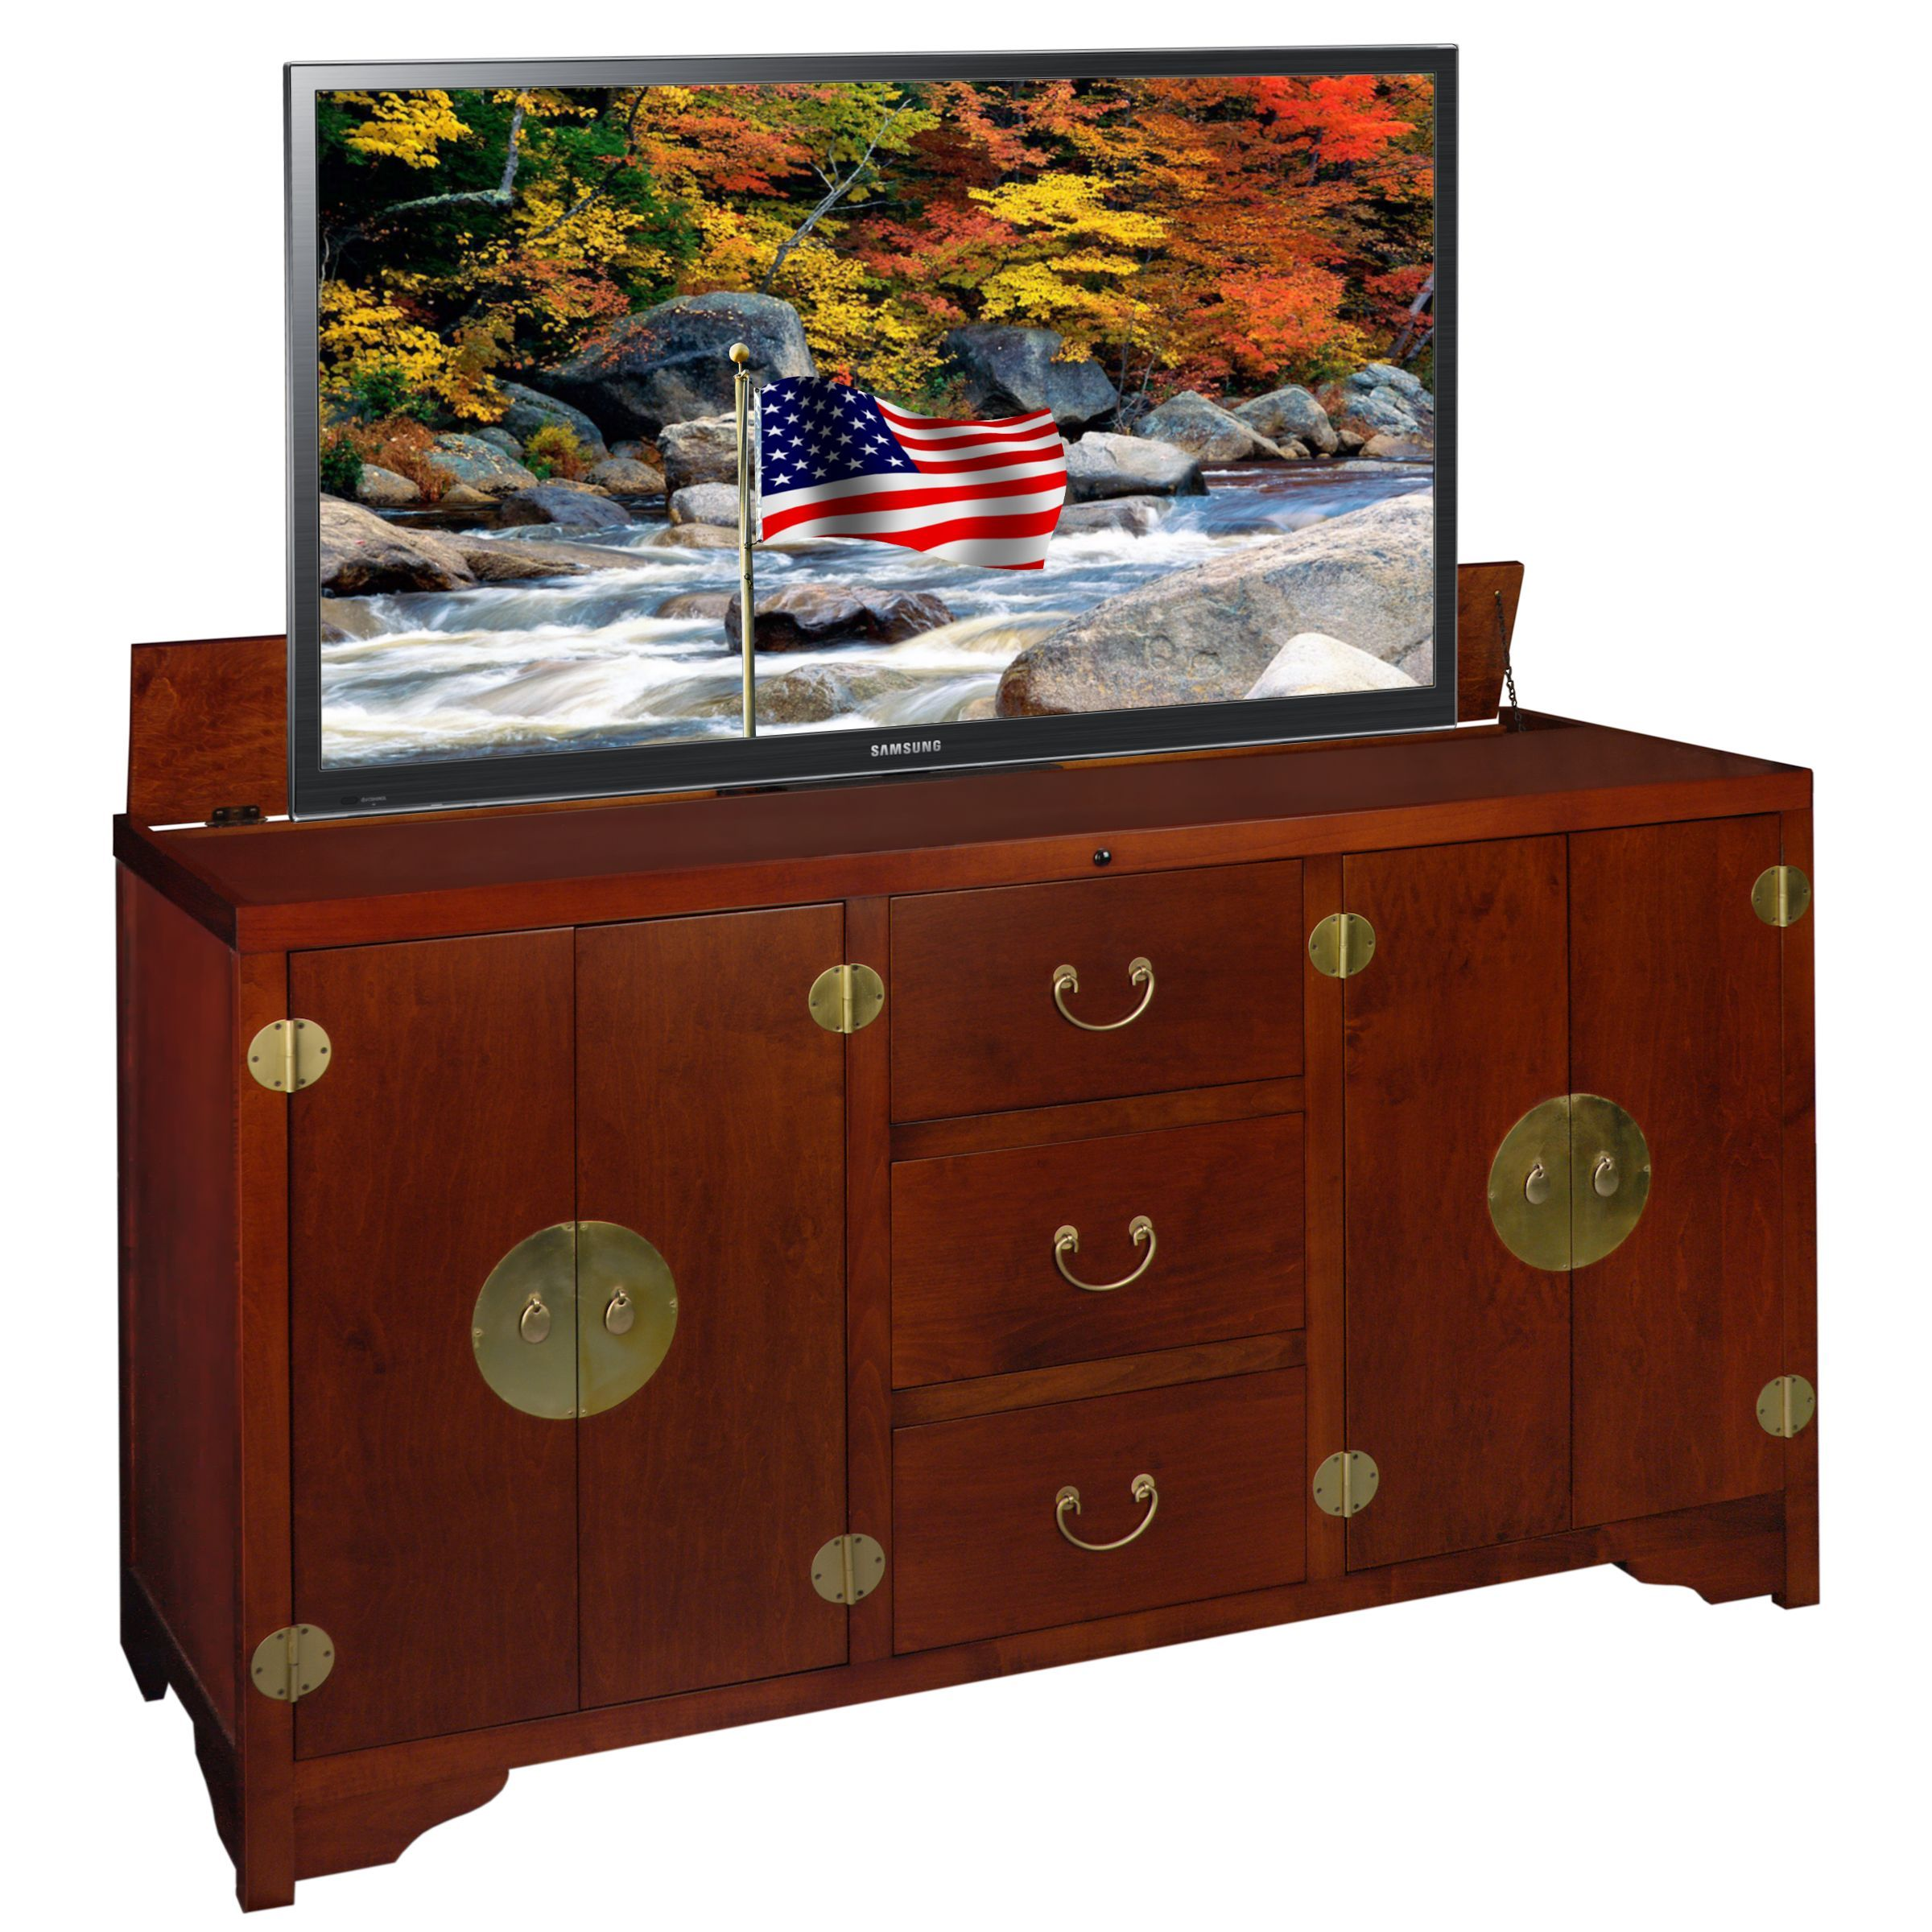 Our New Solid Wood Made in the USA Dynasty TV Lift Cabinet